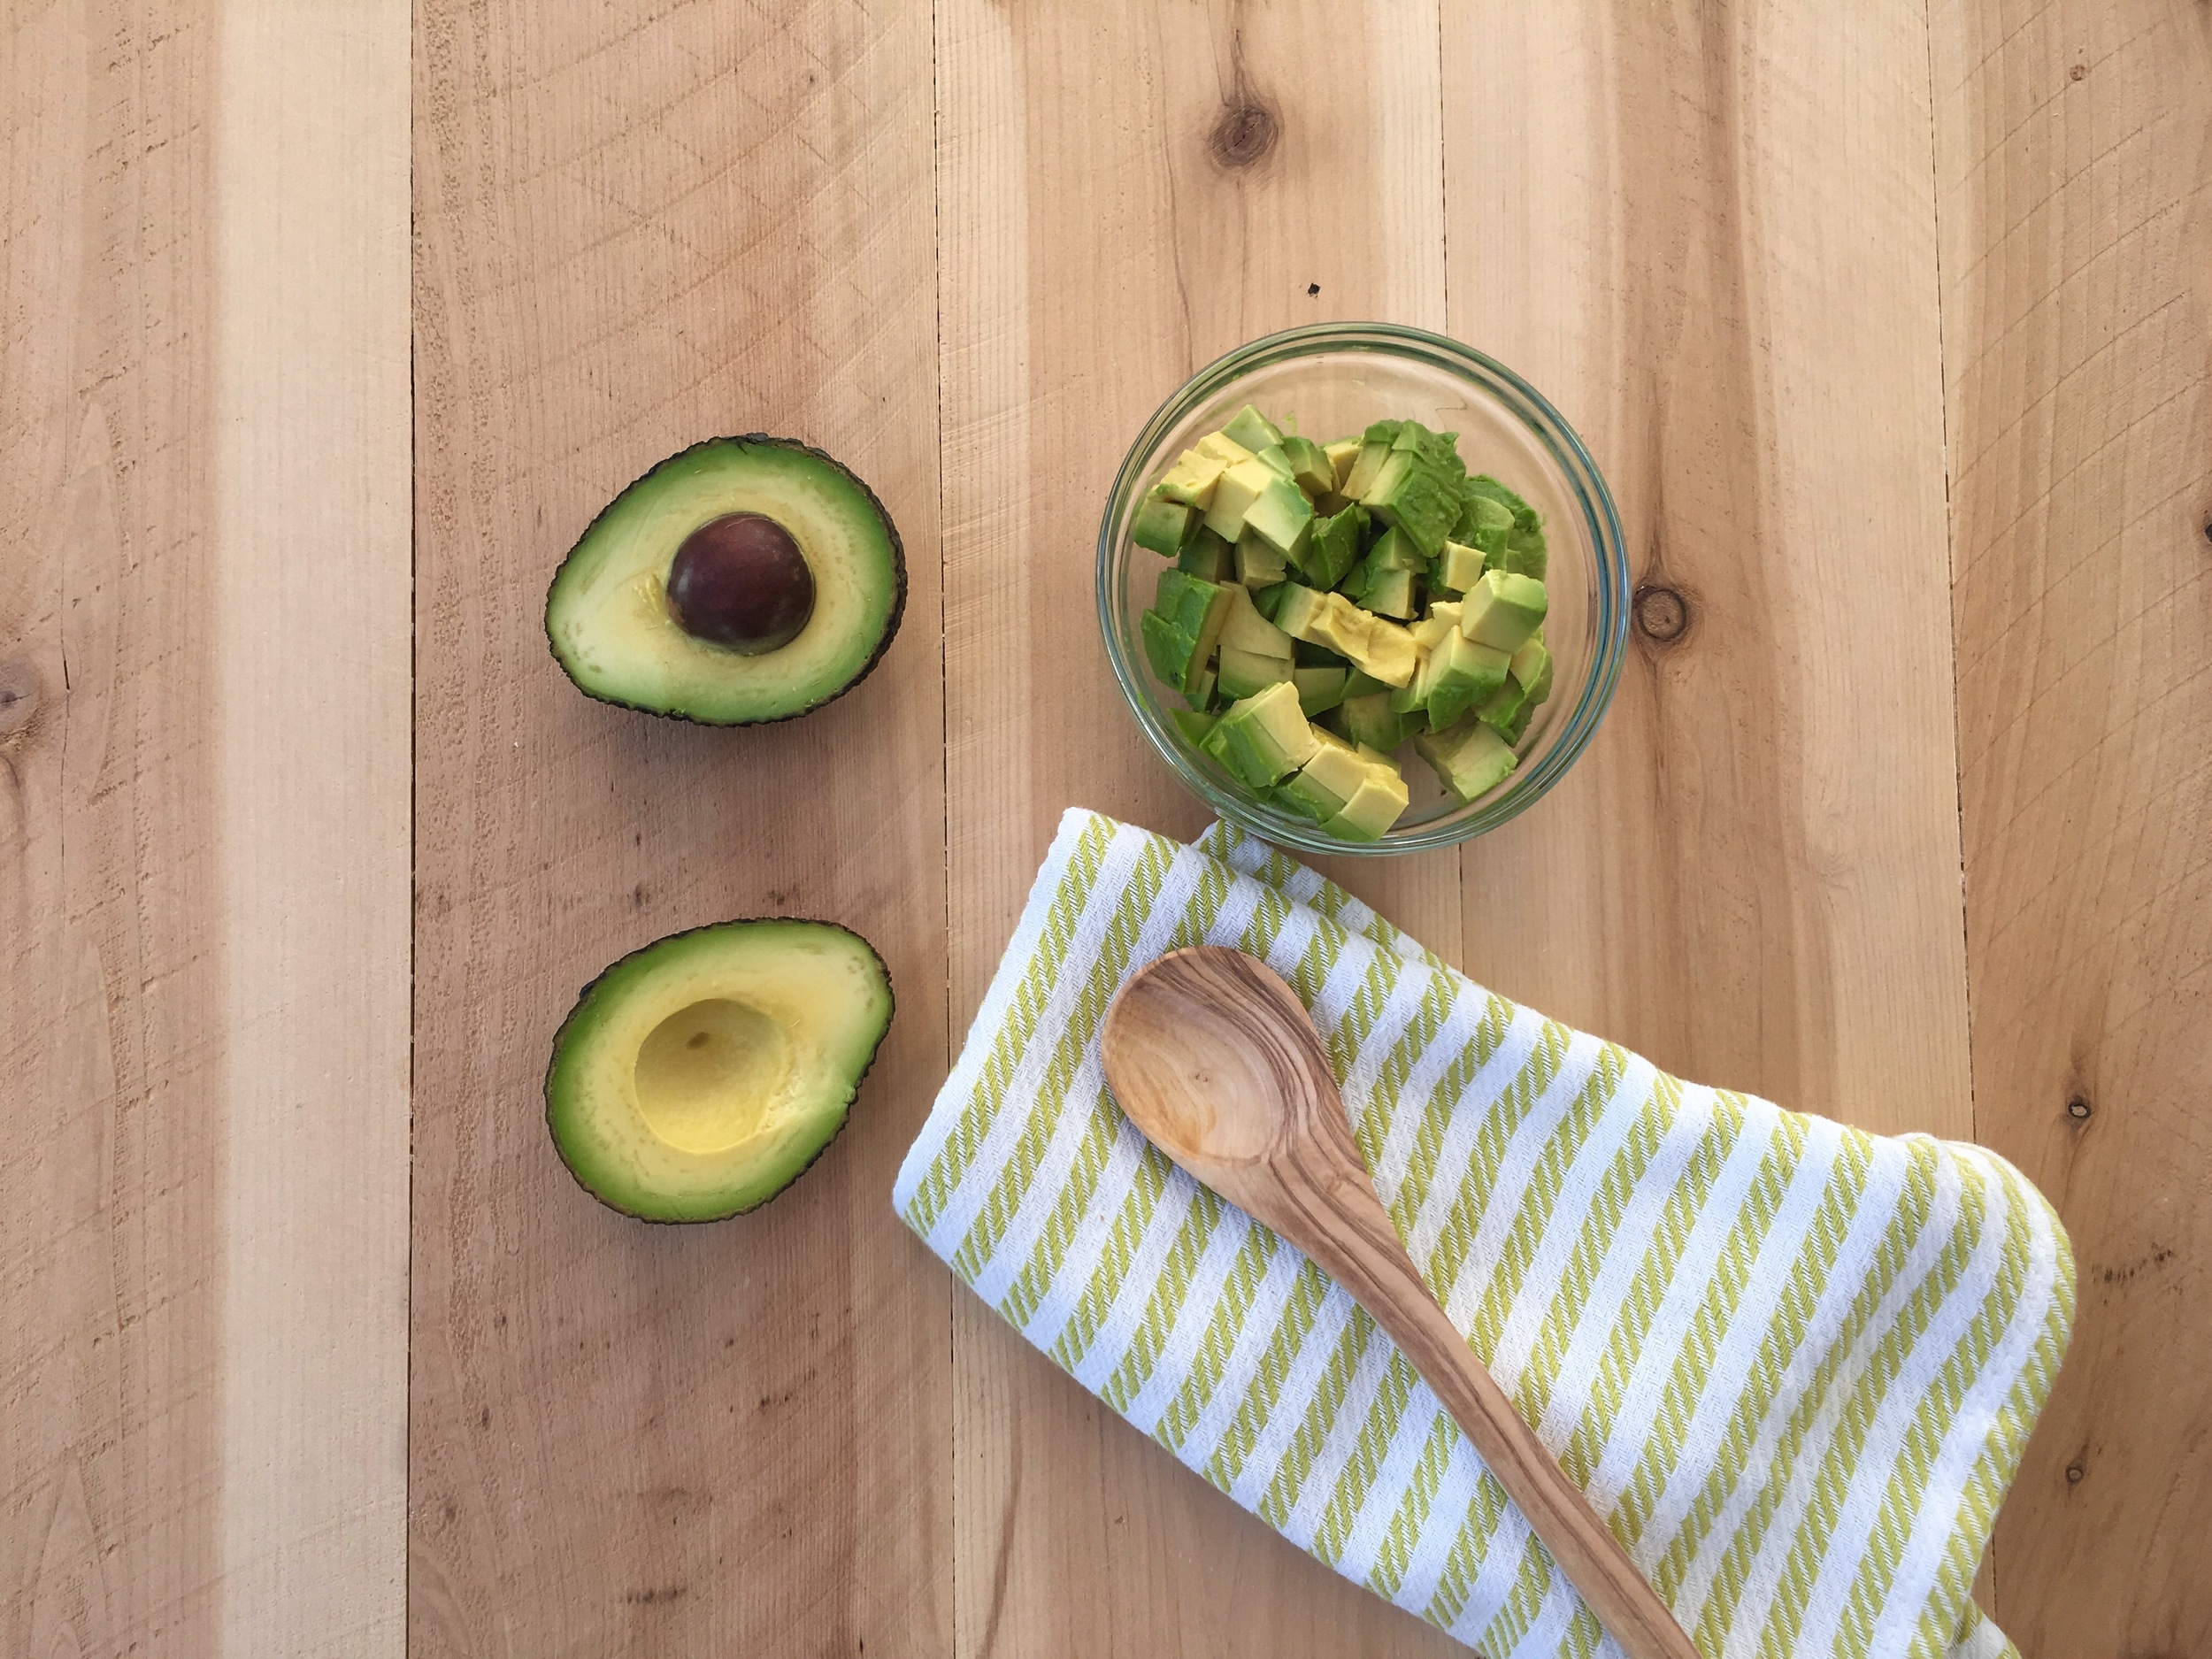 See those little bruises in the hollow of the avocado? INEXCUSABLE!